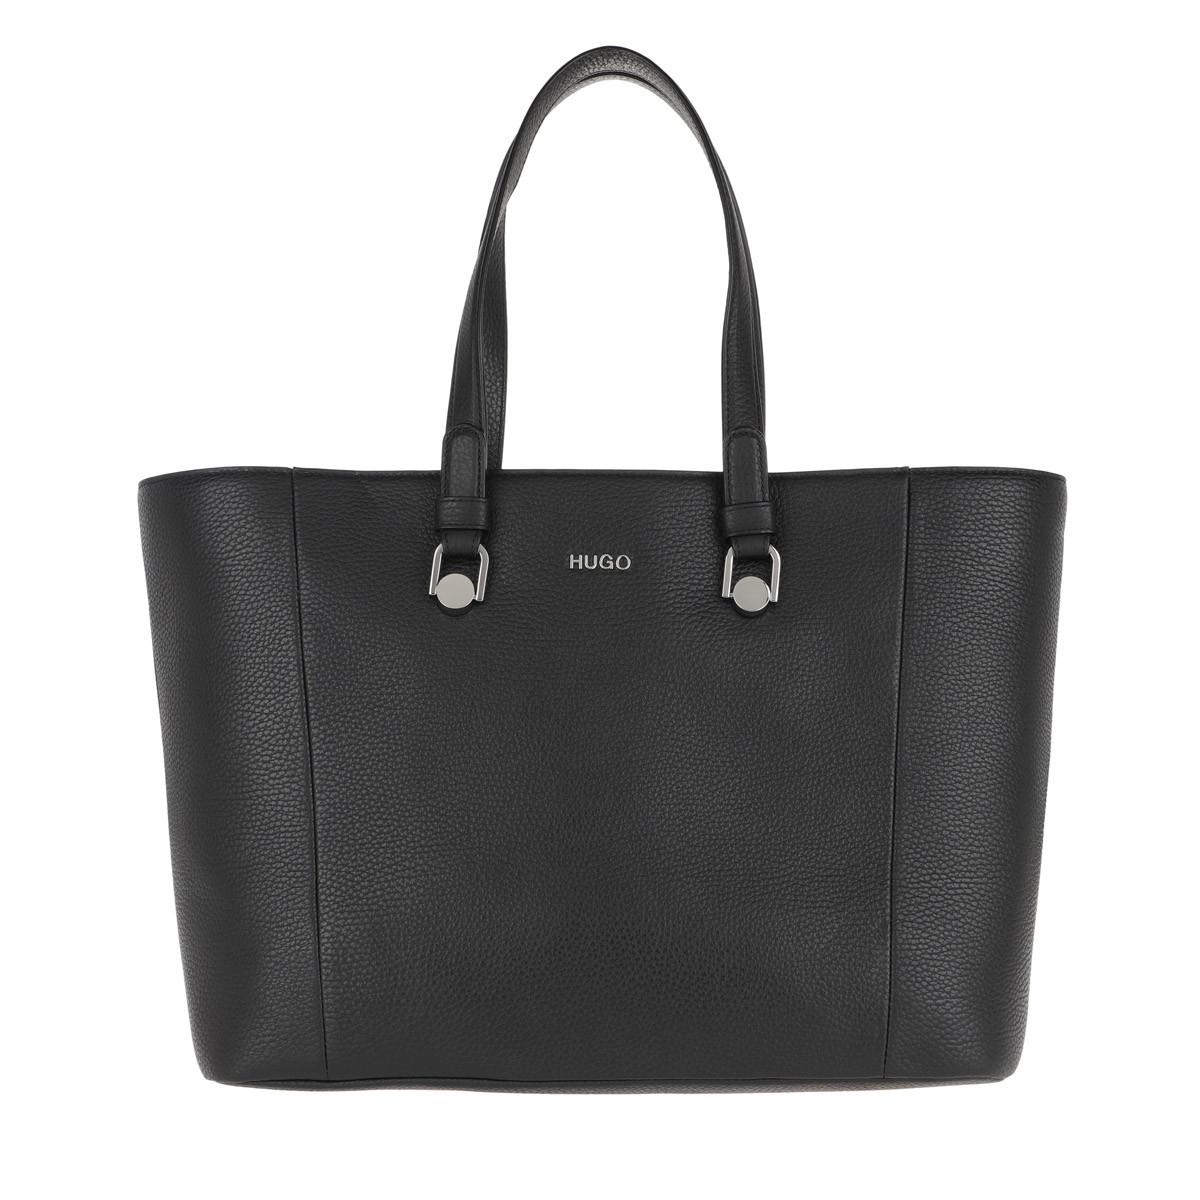 Hugo Shopper - Mayfair Shopper Black - in schwarz - für Damen